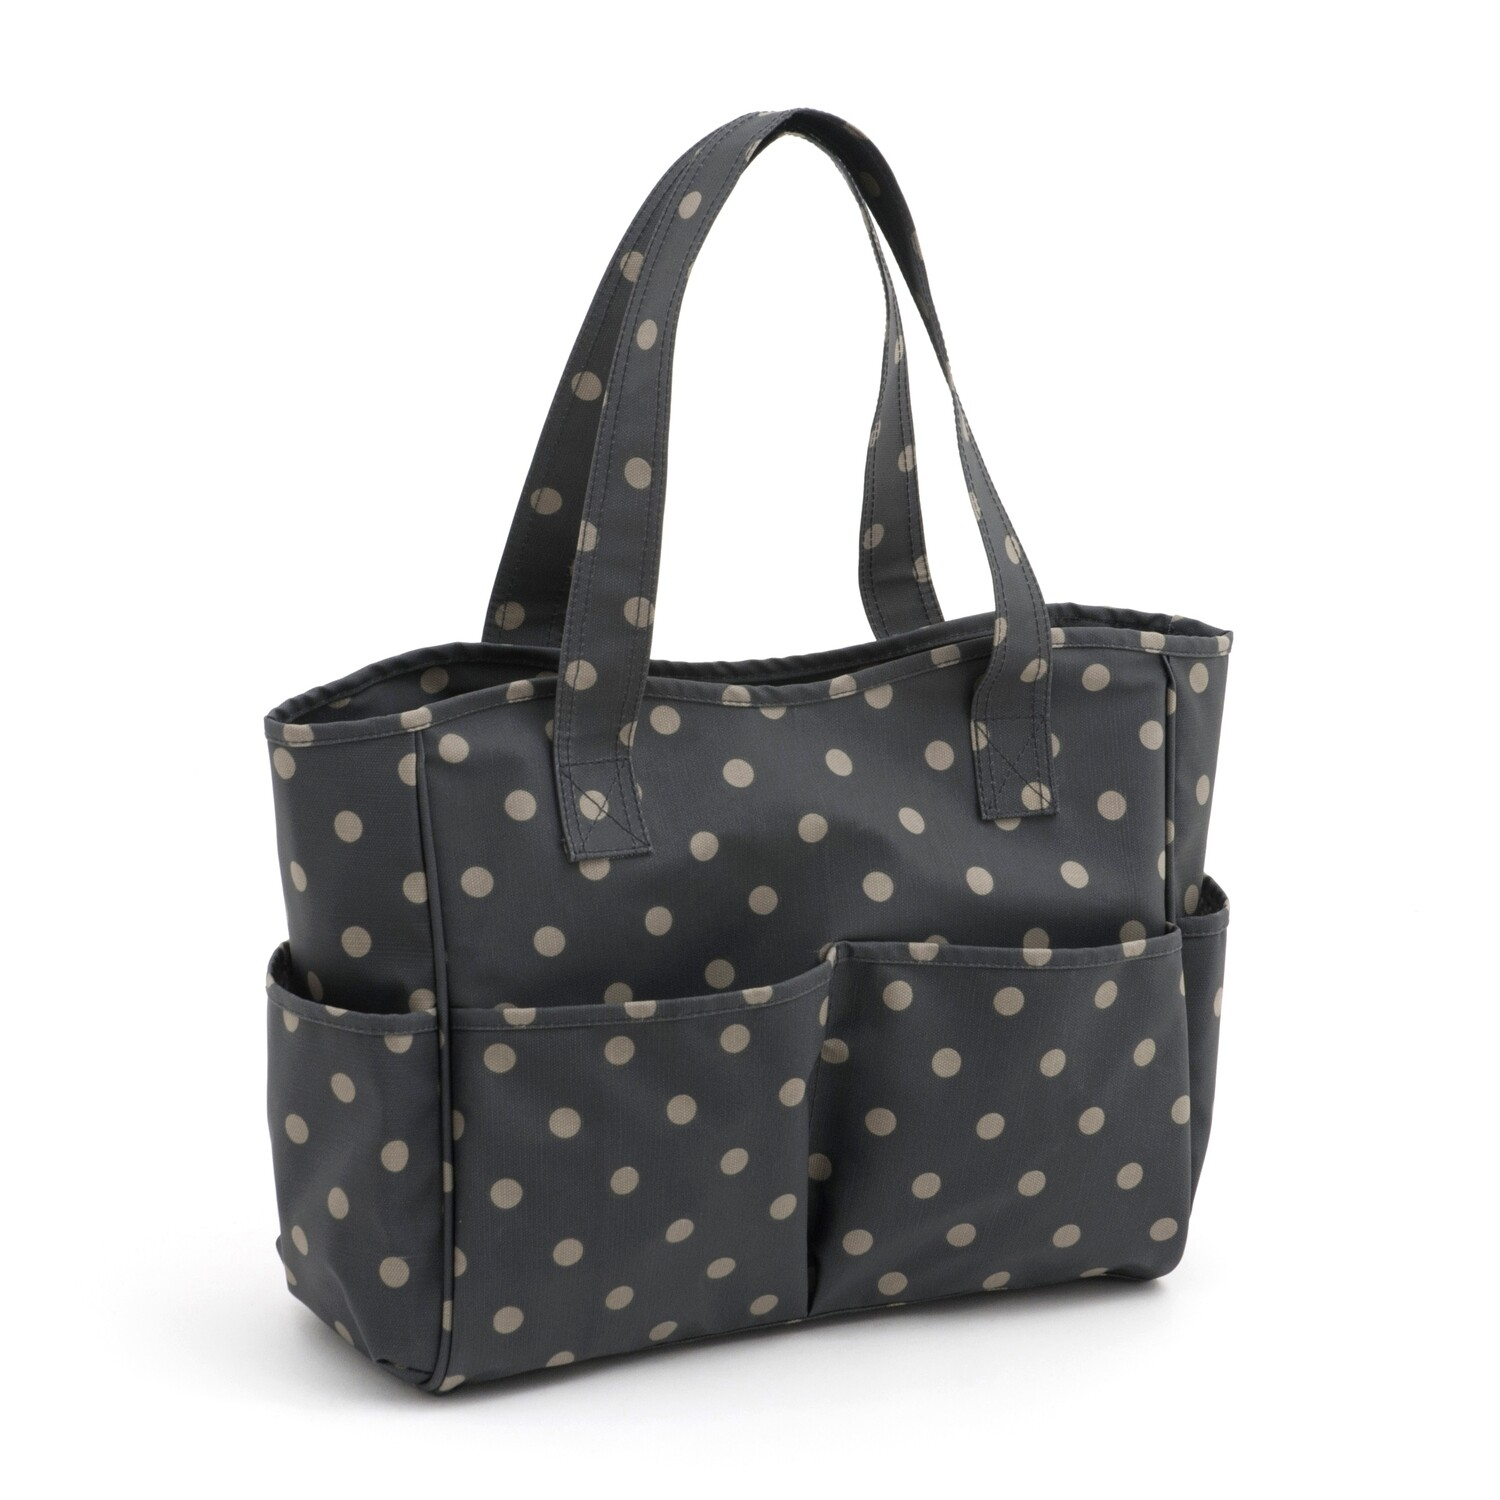 Craft Bag - Charcoal Polka Dot